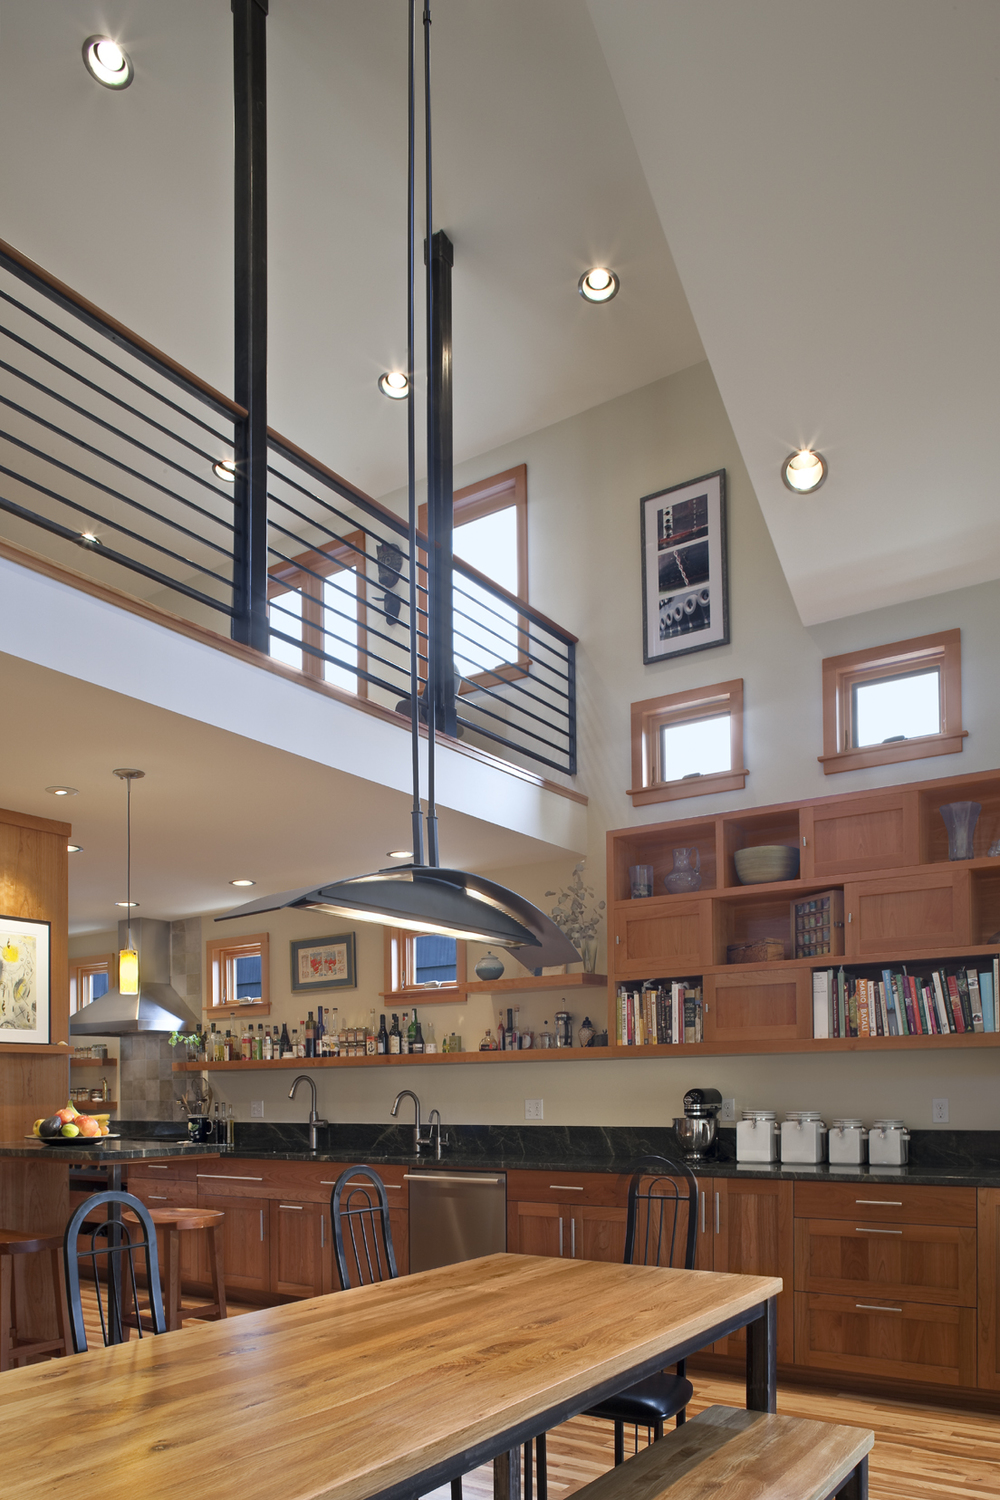 Double height dining room addition to Seattle home showing custom metal guardrail at the catwalk above the Dining Room with cherry Kitchen cabinets and open shelving beyond